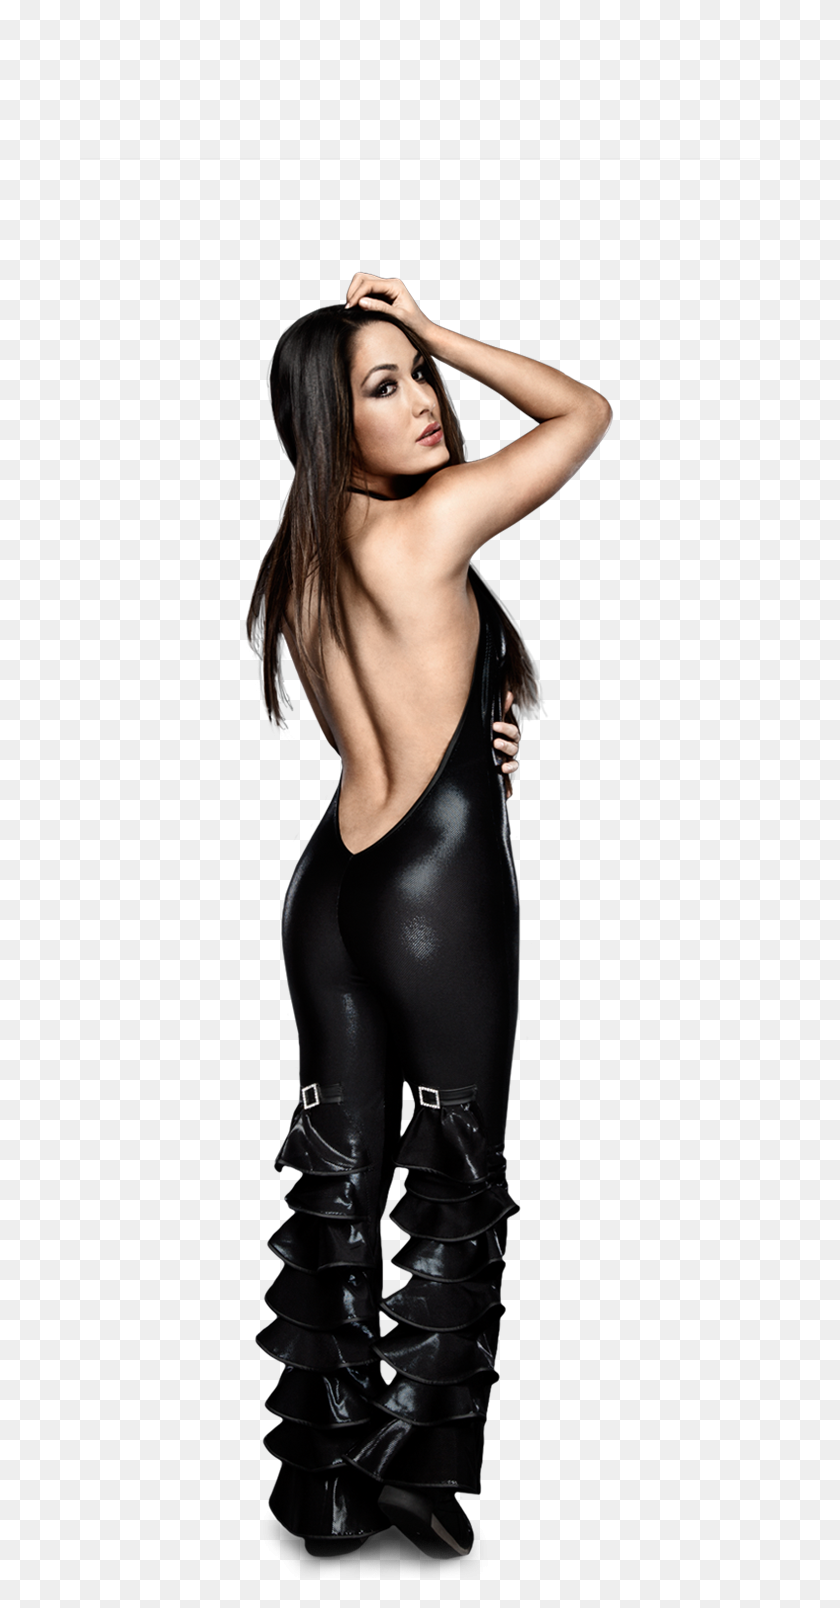 Wwe Brie Bella Wallpaper.